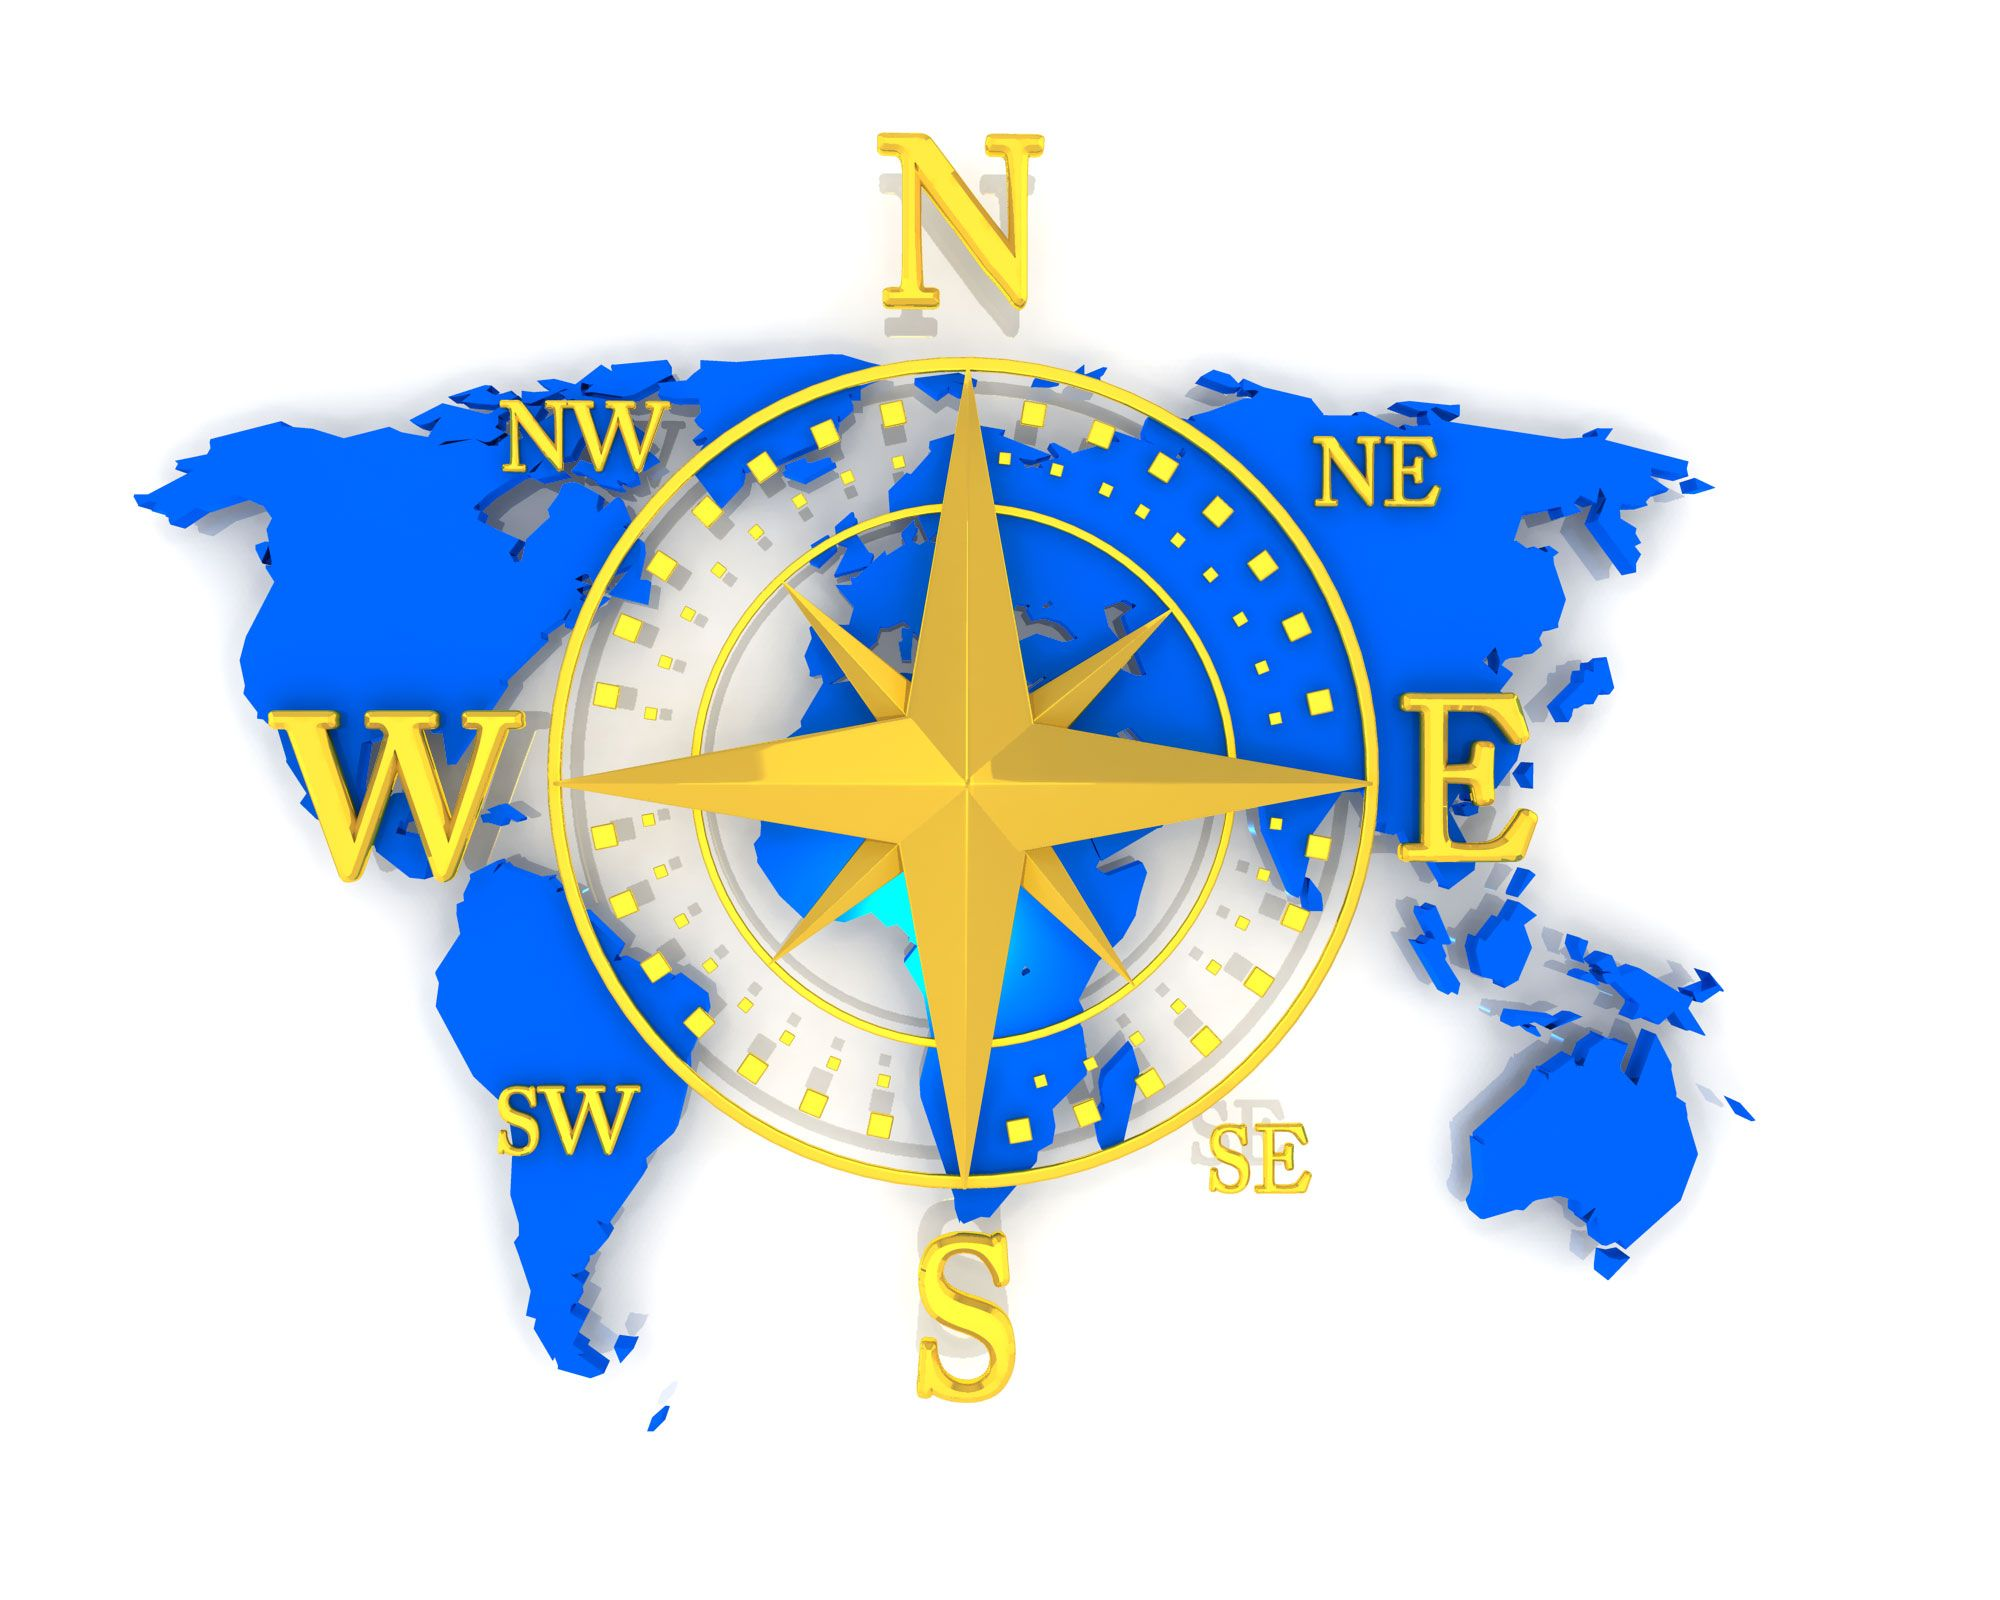 Compass with directions on world map stock photo powerpoint compass with directions on world map stock photo gumiabroncs Images